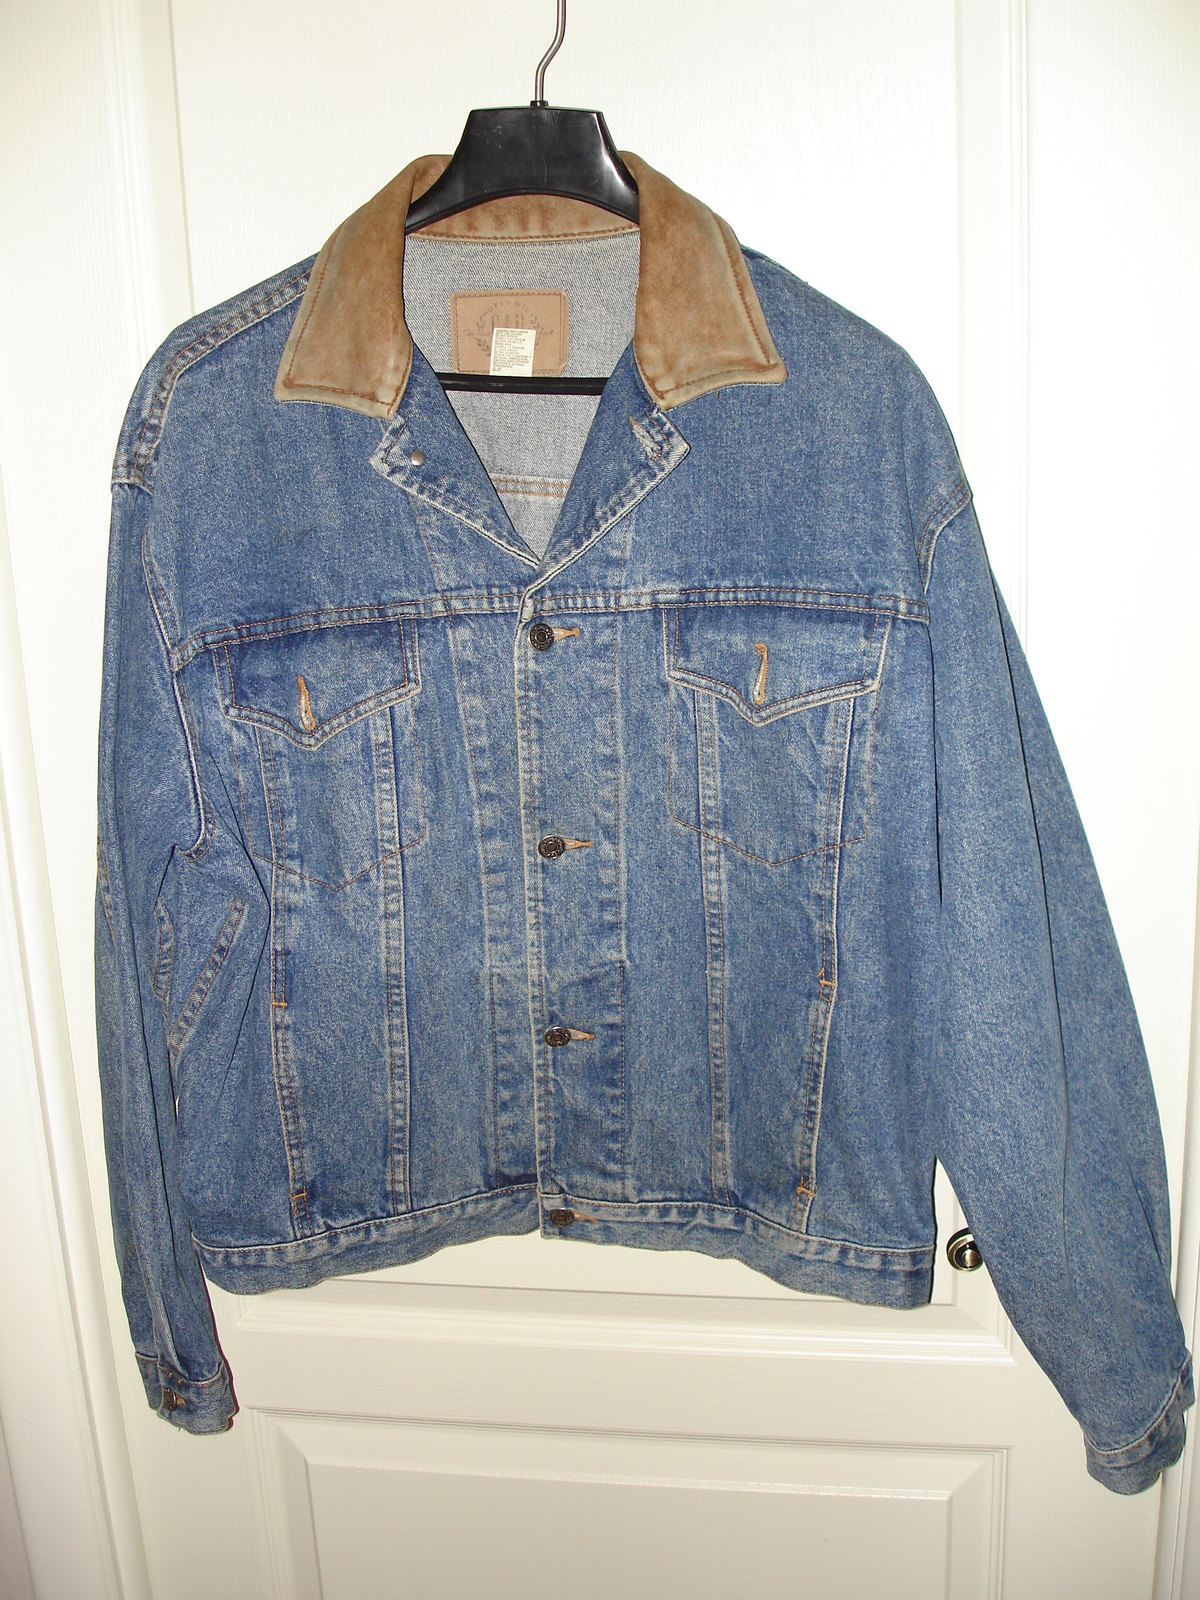 Primary image for Gap Denim Jean Jacket -Mens- Regular Large (L) - Blue -- 30-5006